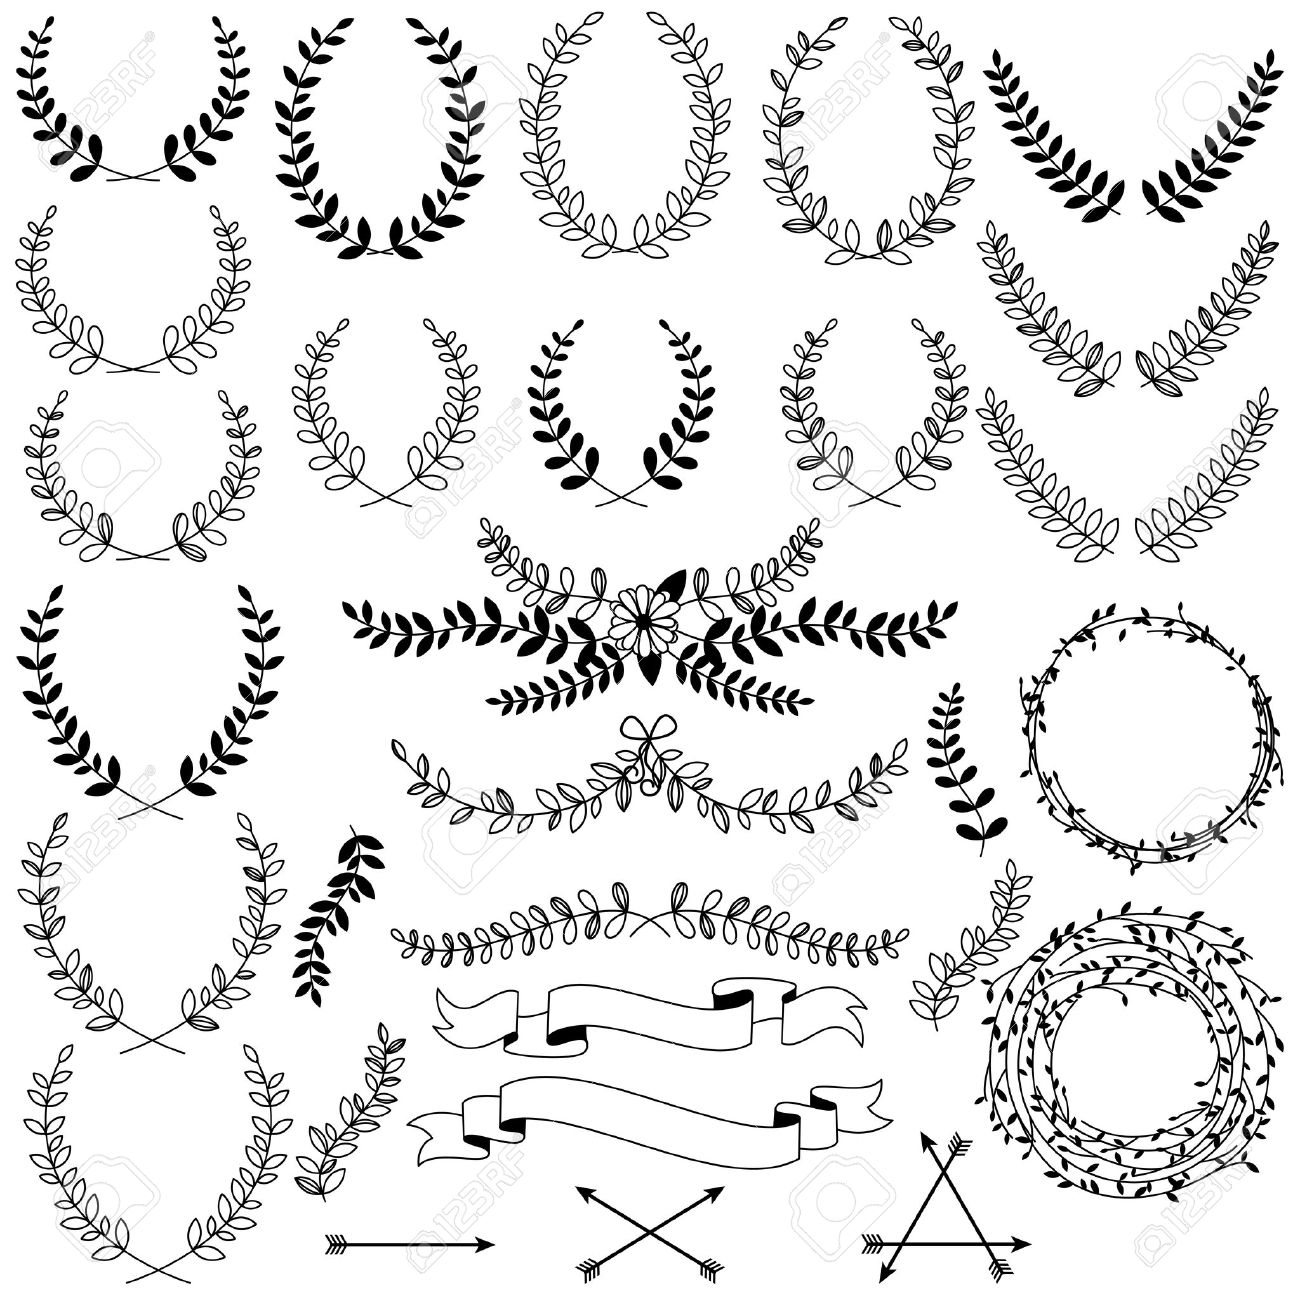 Vector Collection of Black Line Laurels, Floral Elements and Banners - 37455743